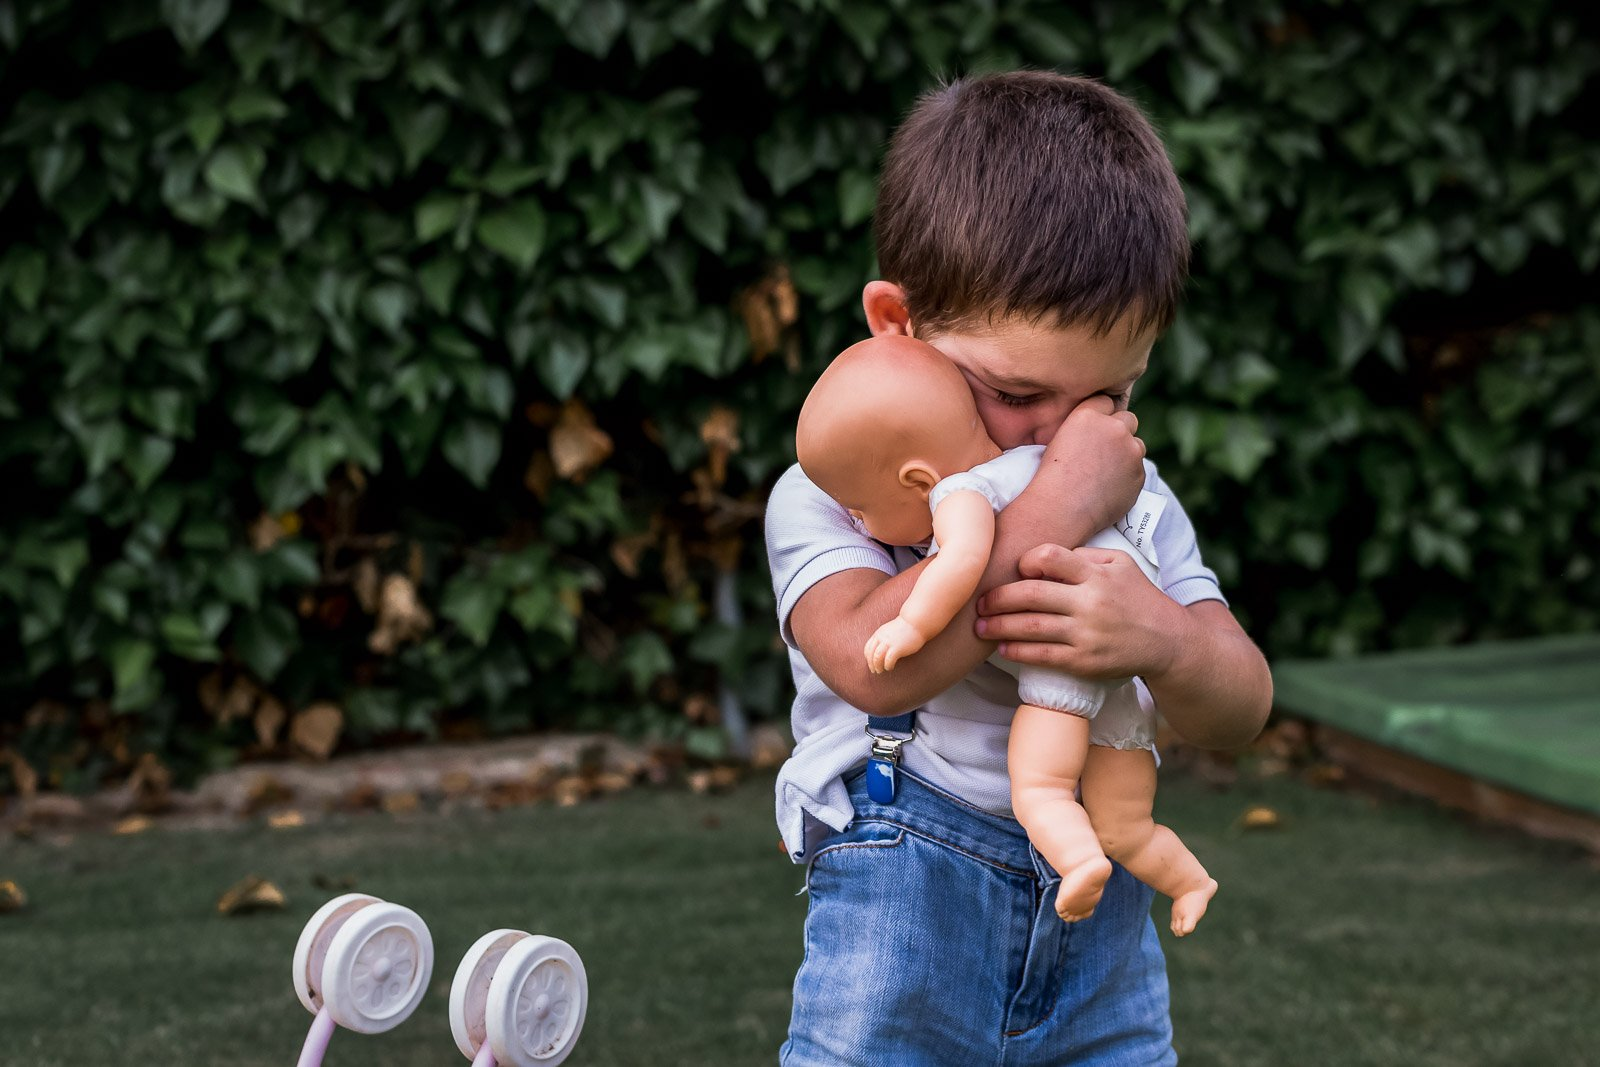 Lucia_lucialifestylephotography clickin moms march forum photo contest boy hugging doll